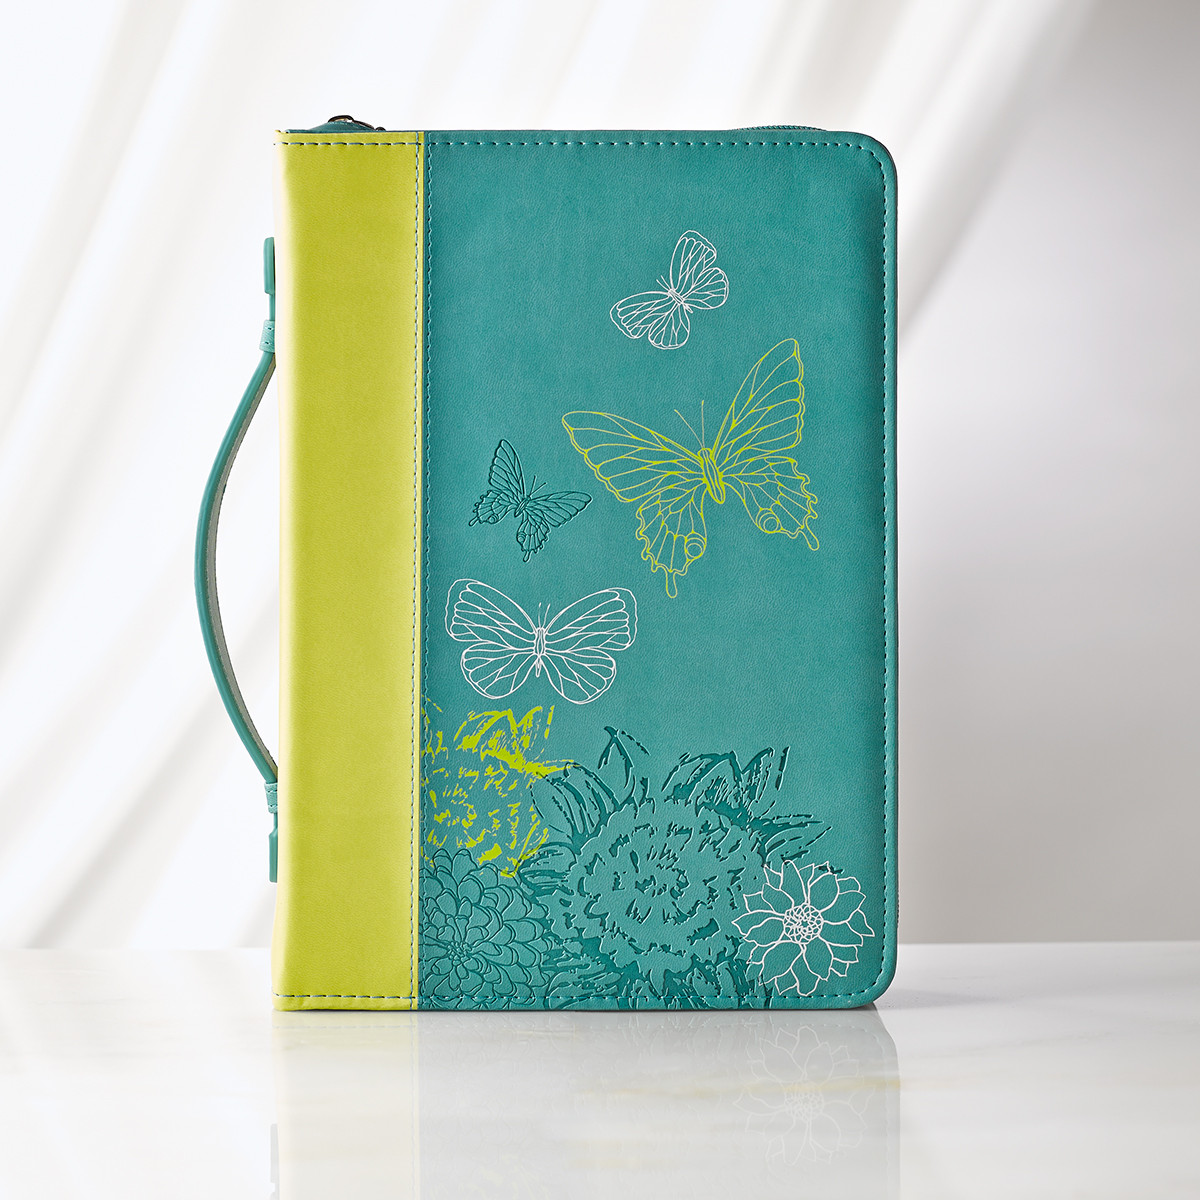 Large Lime/Dusty Blue Butterflies Bible Cover bible cover, large bible cover, book cover, zipper cover, religious bible cover,debossed bible cover, inspirational bible cover, BBL526